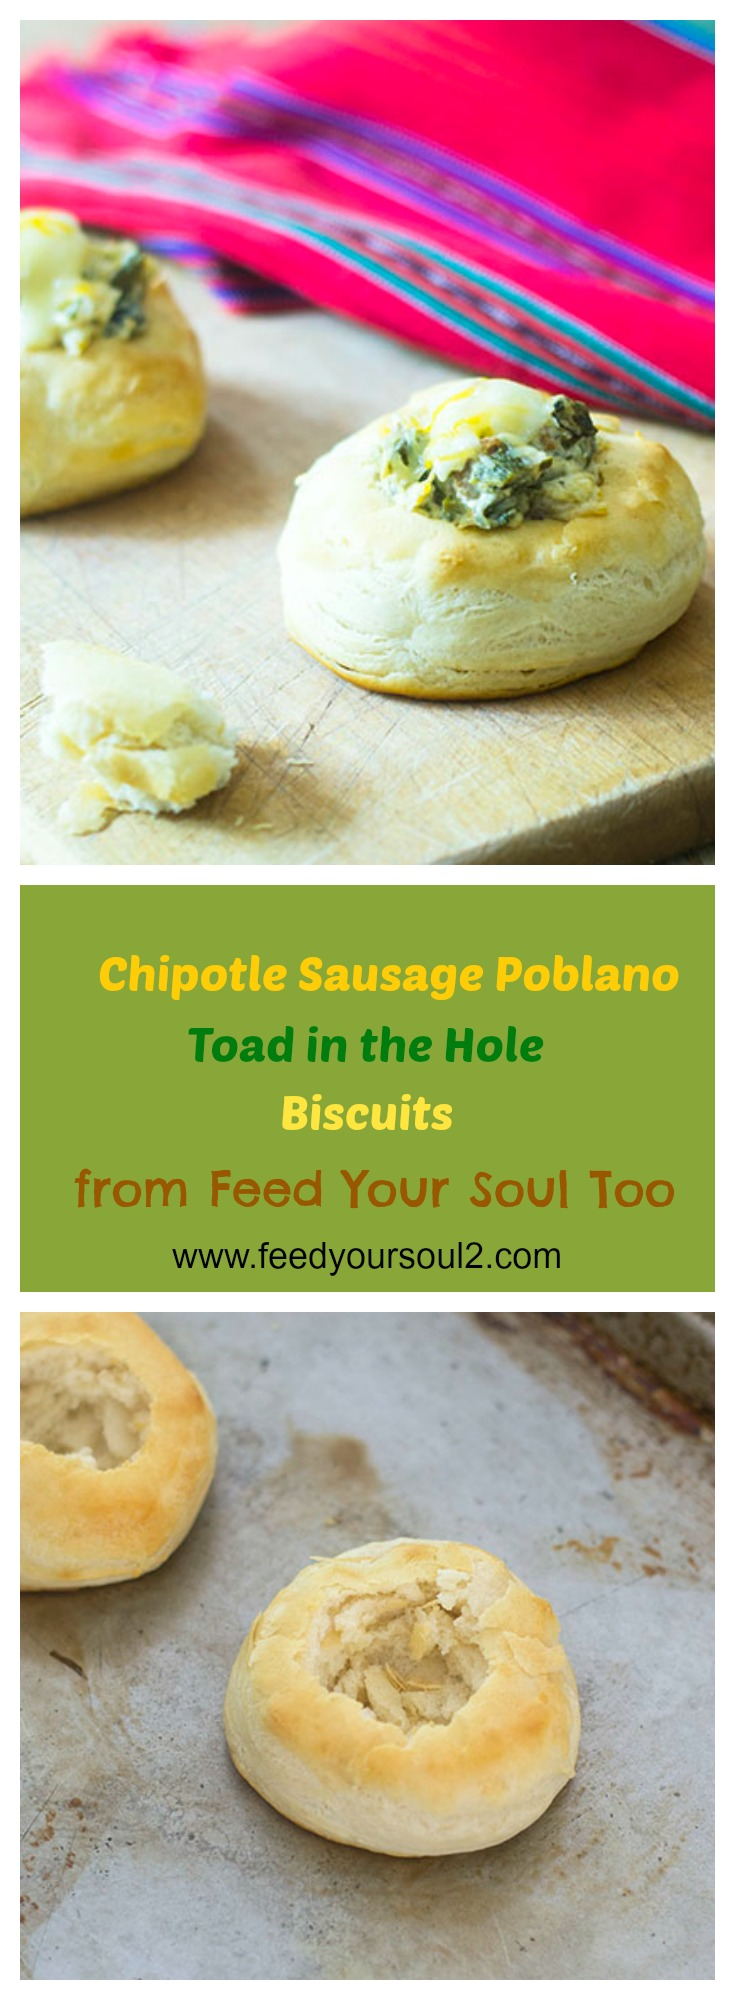 Chipotle Sausage Poblano Toad in the Hole Biscuits #appetizers #biscuits #chipotlesausge | feedyoursoul2.com